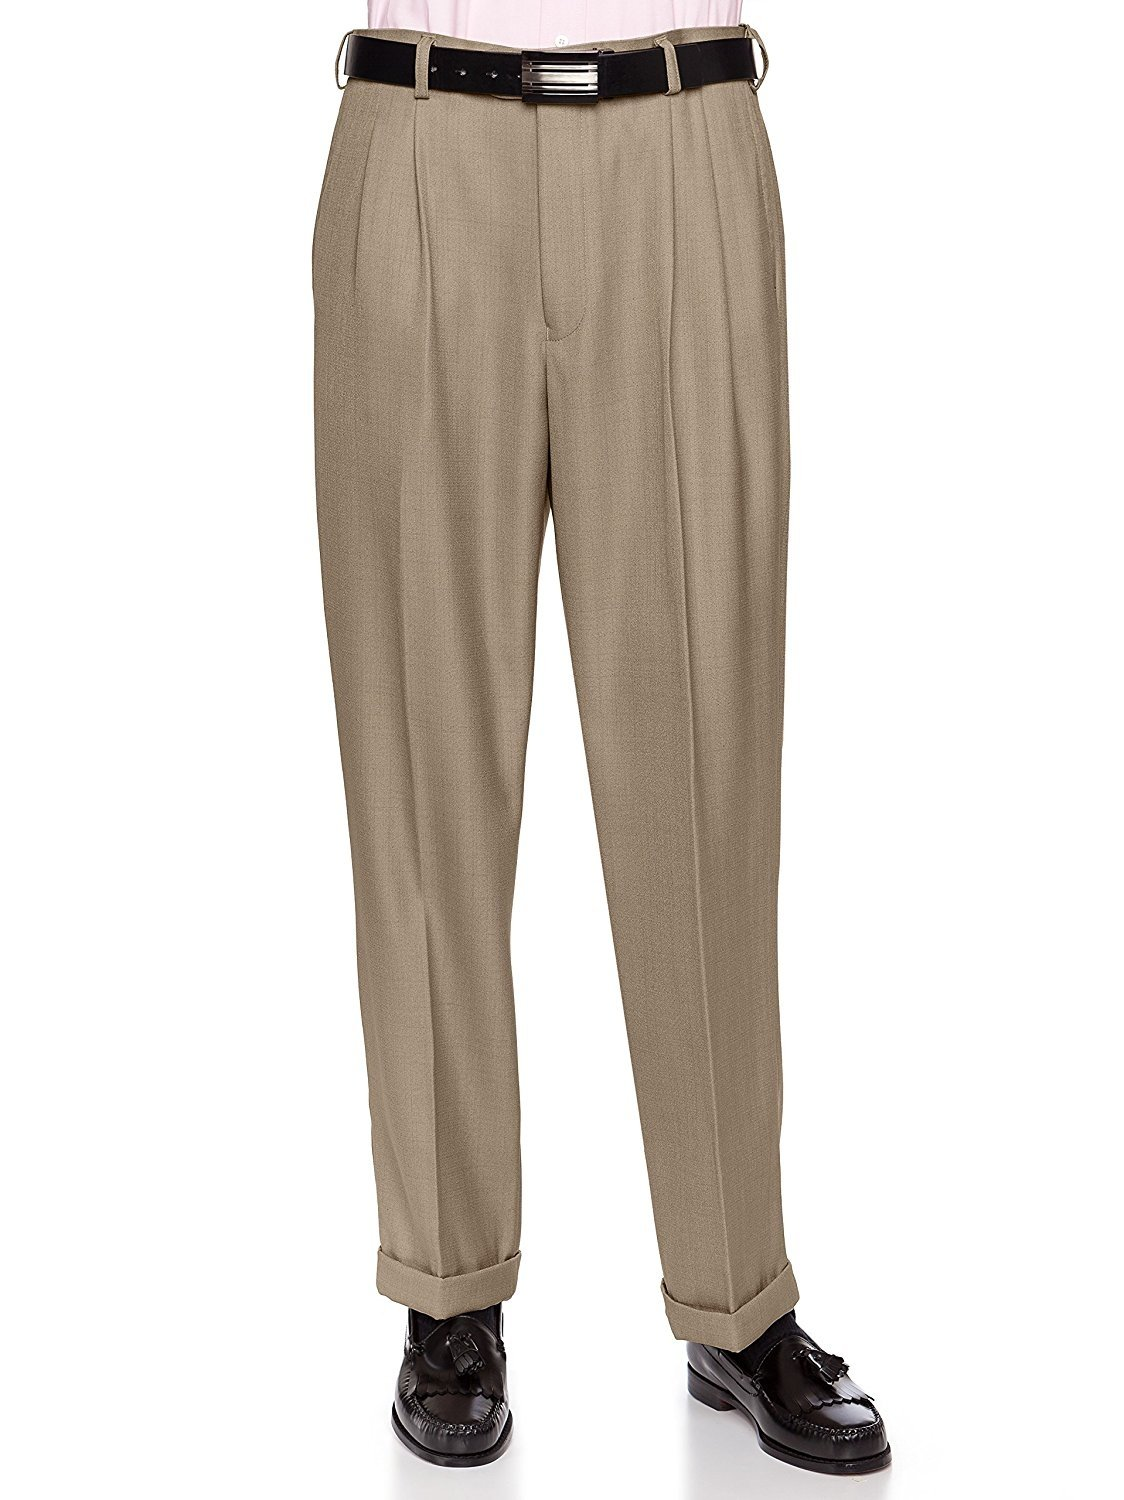 Giovanni Uomo Mens Pleated Front Dress Pants With Hidden Expandable Waist